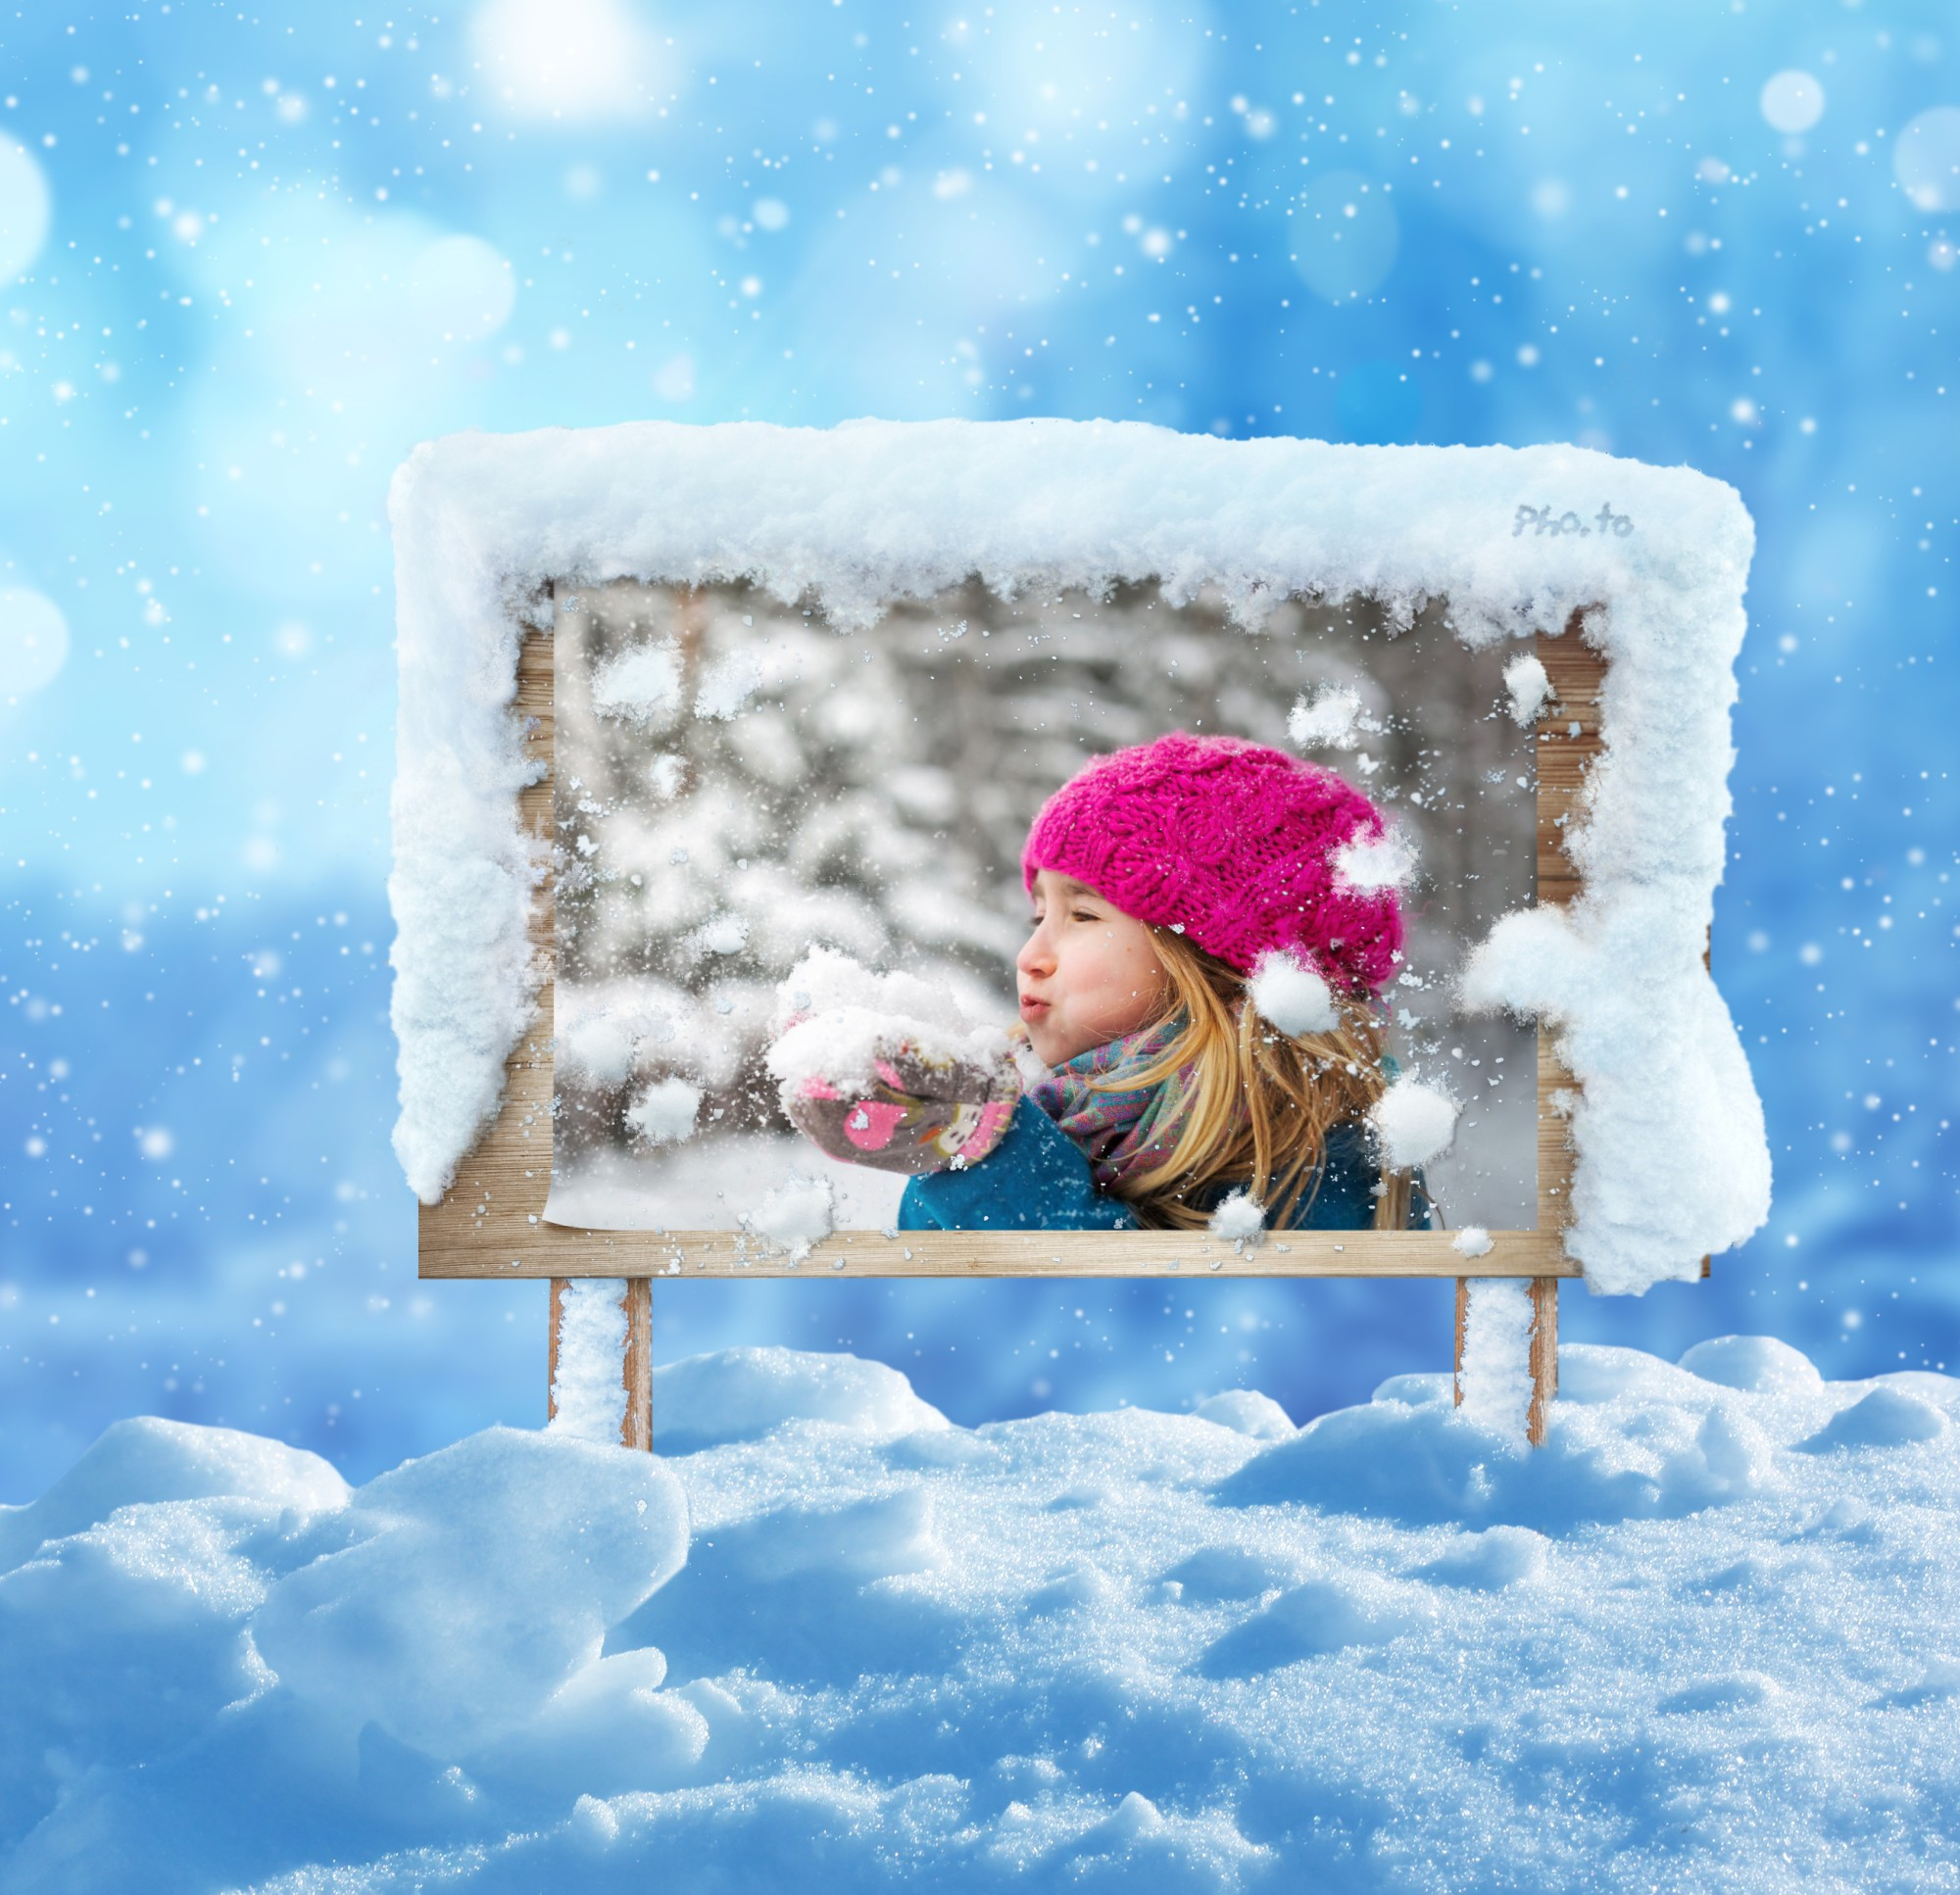 A photo of a girl blowing the snow is set on winter wooden signboard online